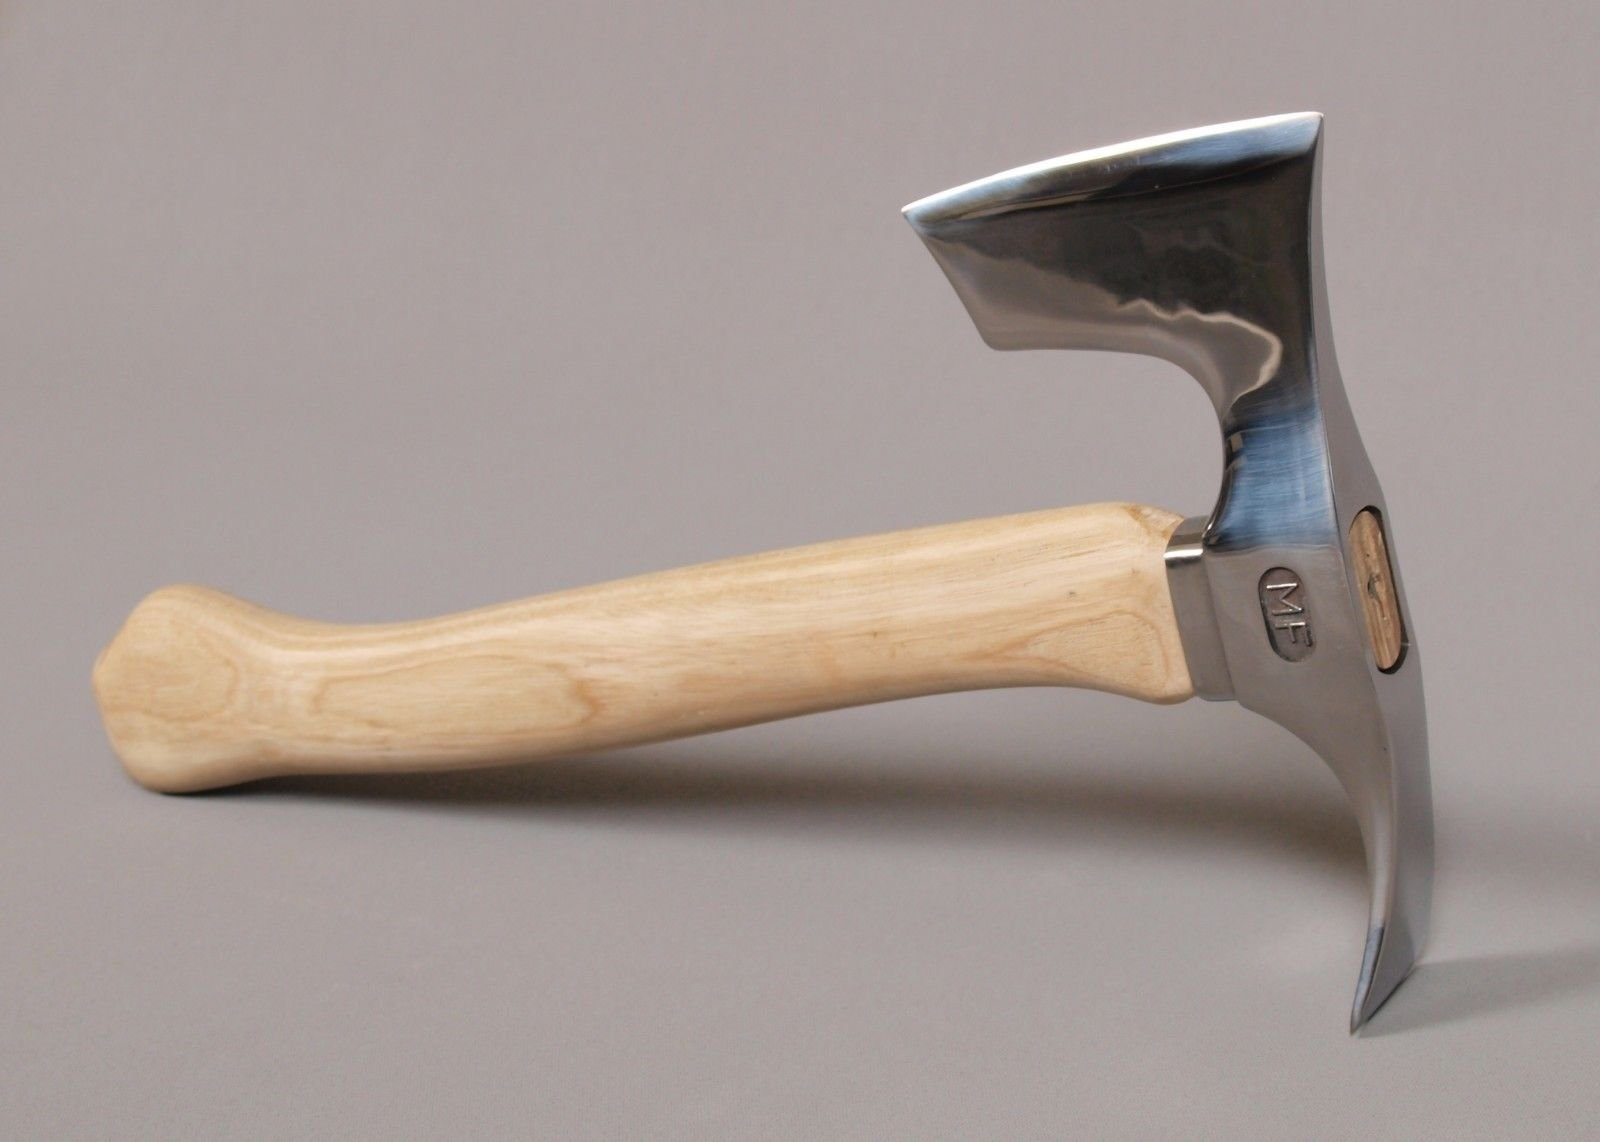 Stainless Steel Elegant Small Bearded Hatchet / Axe Combined with Adze Blade